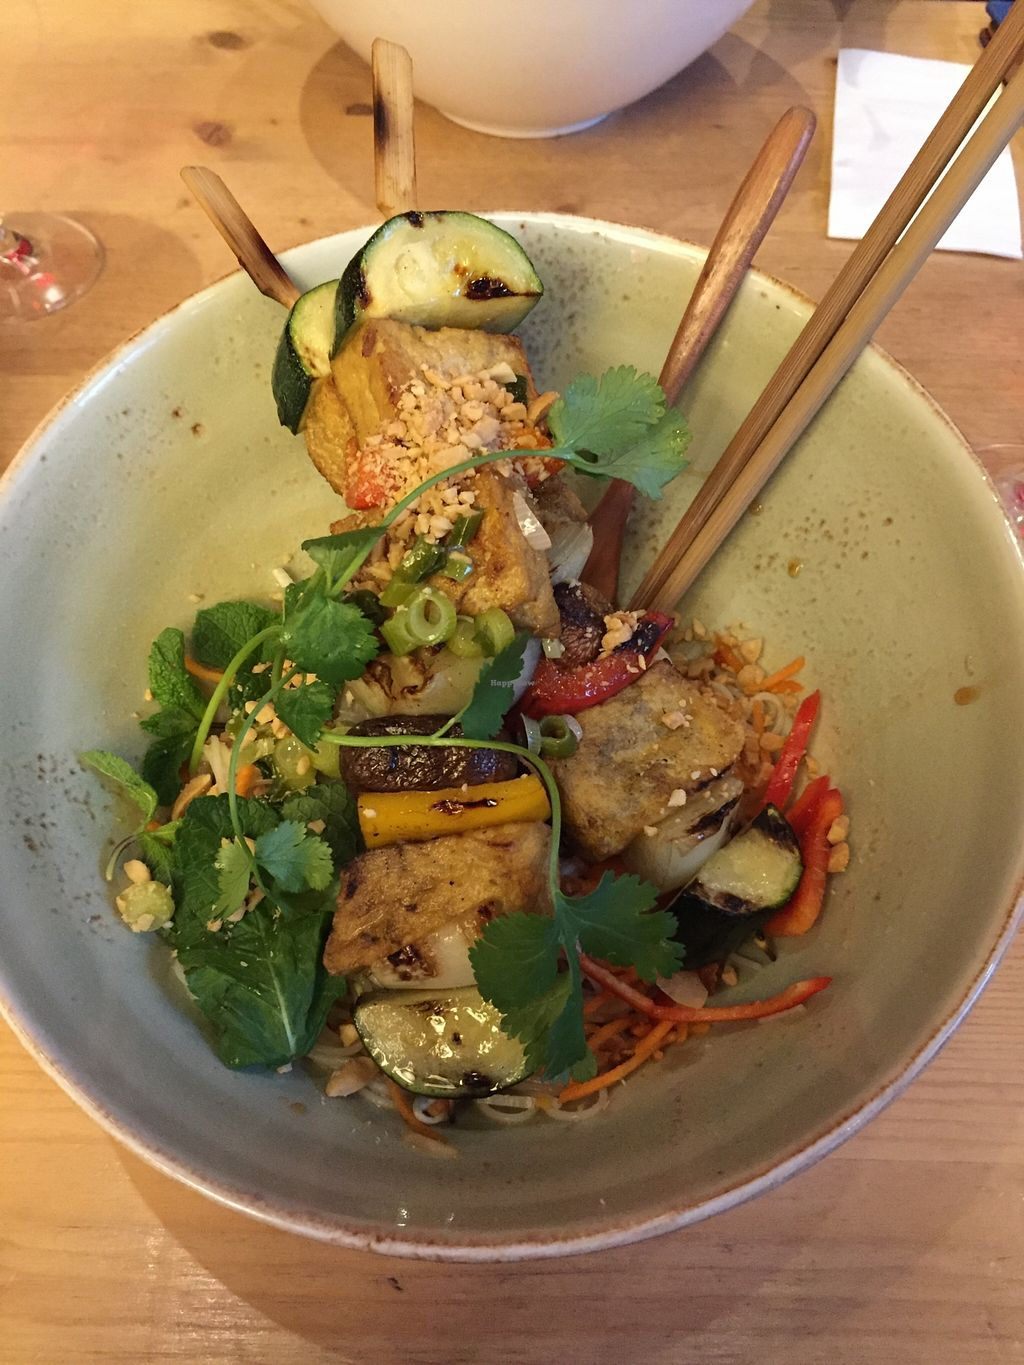 """Photo of Memoires d'Indochine  by <a href=""""/members/profile/EmKlu"""">EmKlu</a> <br/>Veggie/tofu skewers over rice noodles with a delicious sauce! <br/> March 21, 2016  - <a href='/contact/abuse/image/62401/140779'>Report</a>"""